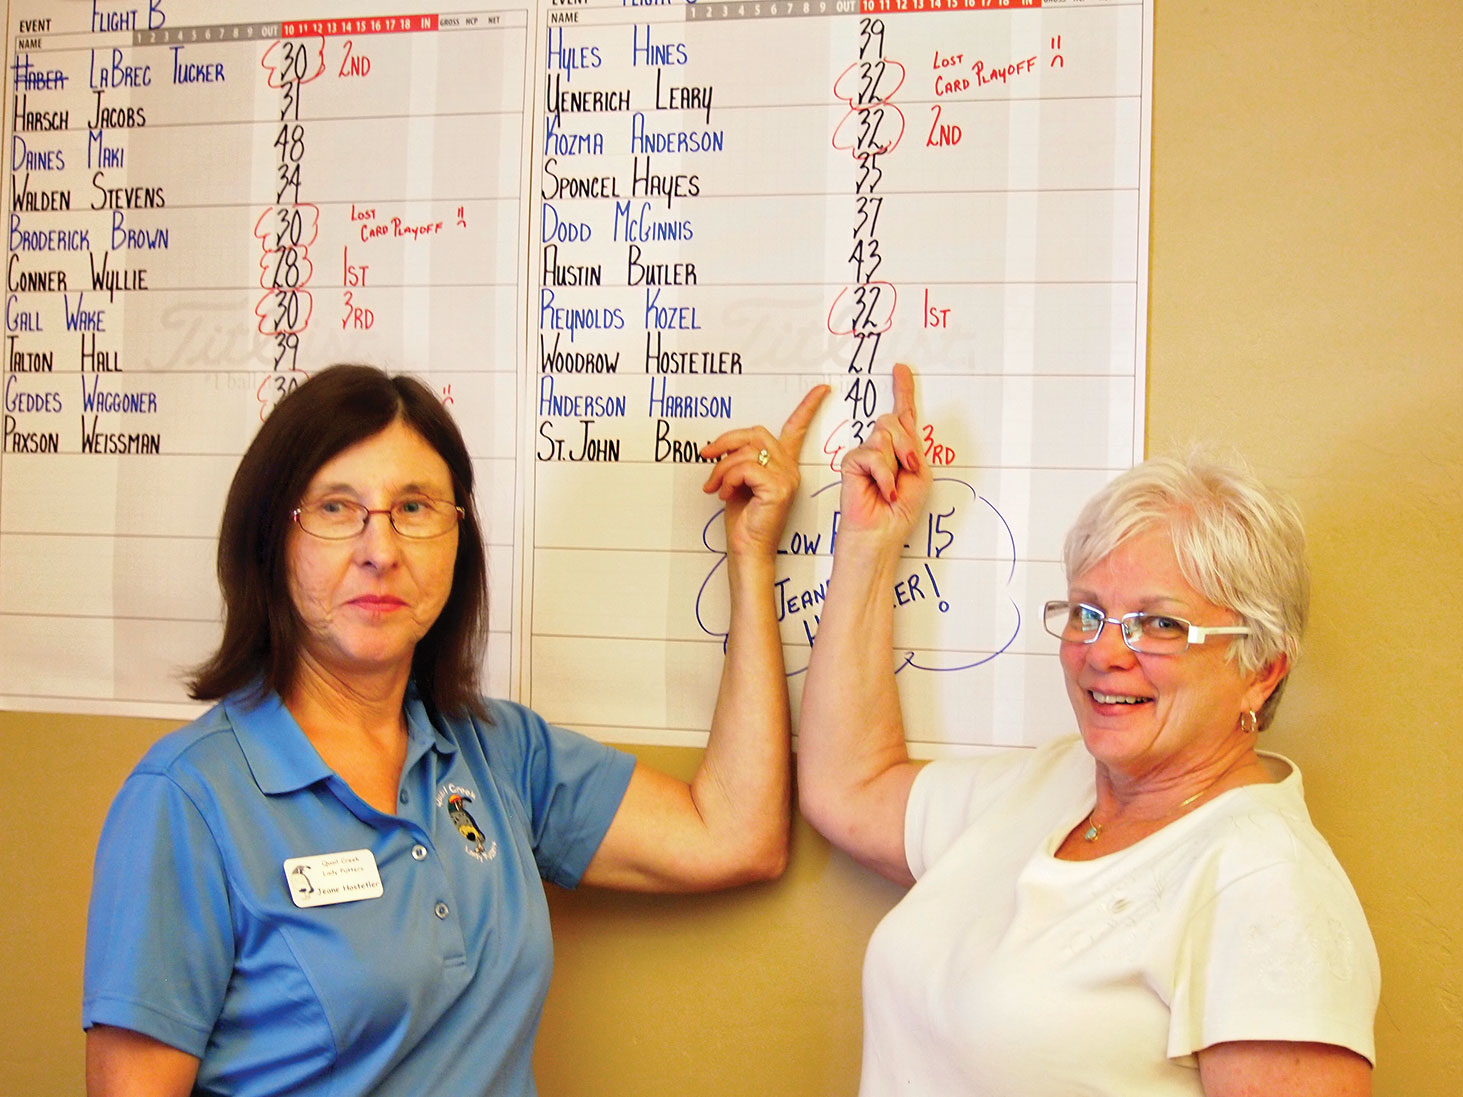 Jeane Hostetler and Karen Woodrow were all smiles when it was announced that they had the low score for Flight C at the Niner/Putter golf tournament. At 15 strokes Jeane had the lowest putting score for the nine holes.